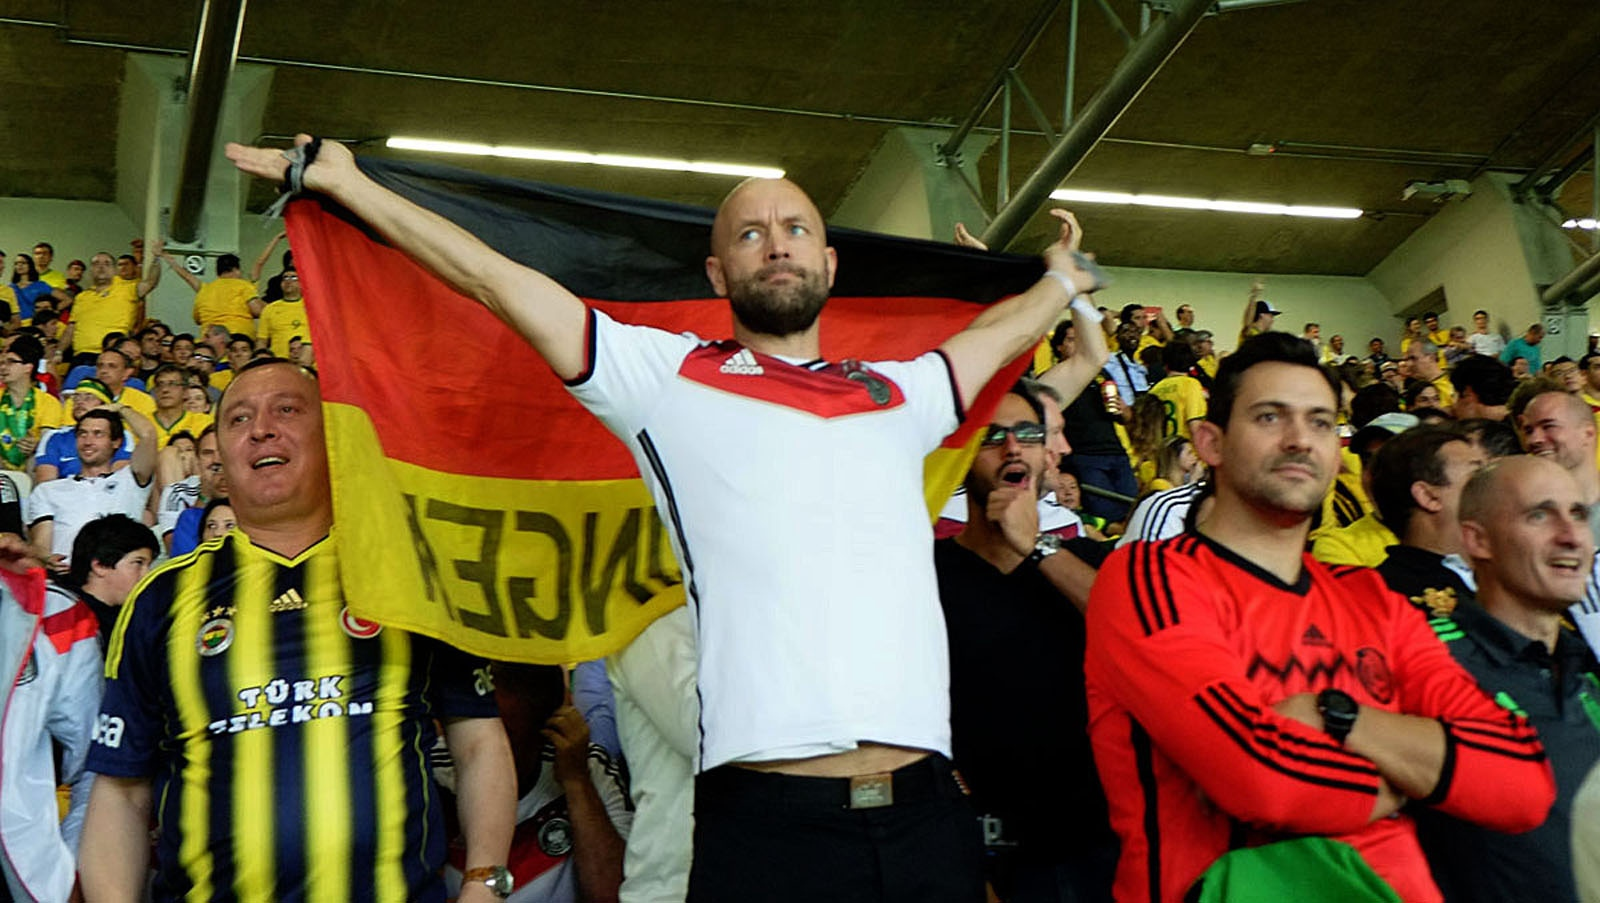 An unidentified German celebrates. The Brazil vs Germany football match that took place on 8 July 2014 at the Estádio Mineirão in Belo Horizonte, Brazil, was the first semi-final match of the 2014 FIFA World Cup.